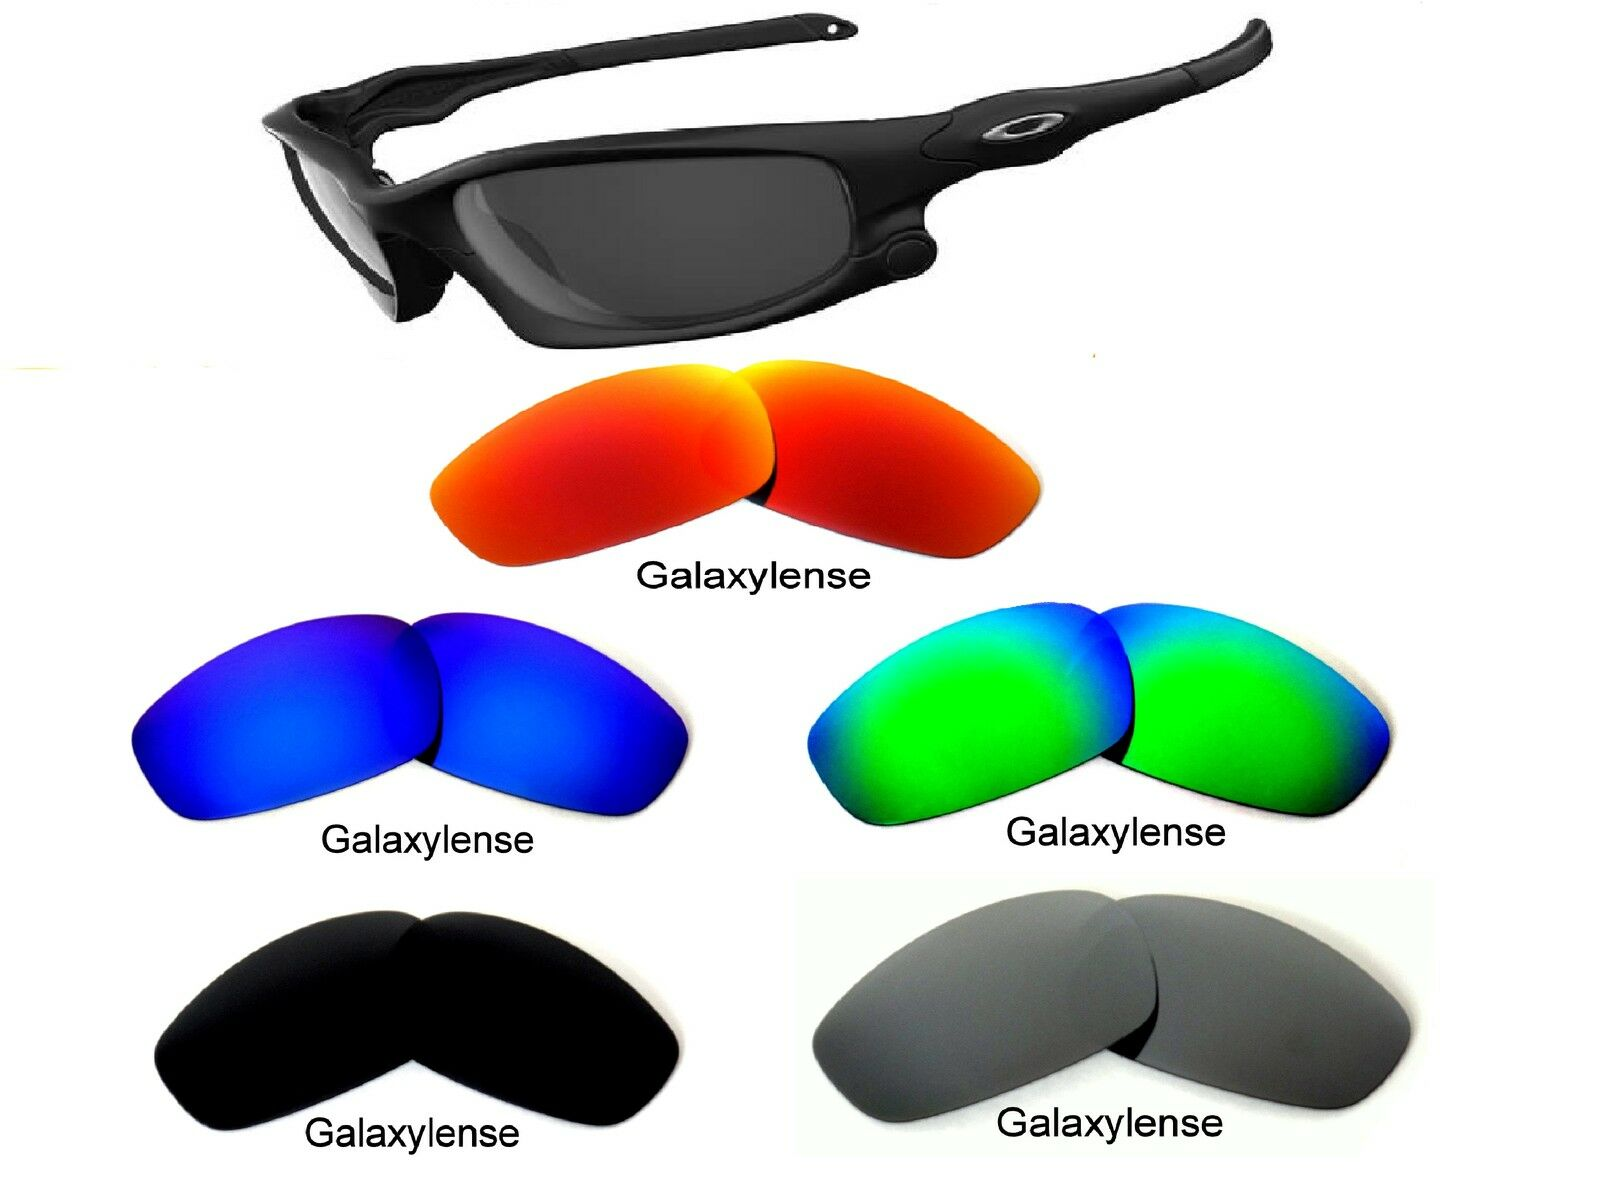 77a6a1f293 Details about Galaxy Replacement Lenses for Oakley Split Jacket 5 color  Polarized 100%UVAB